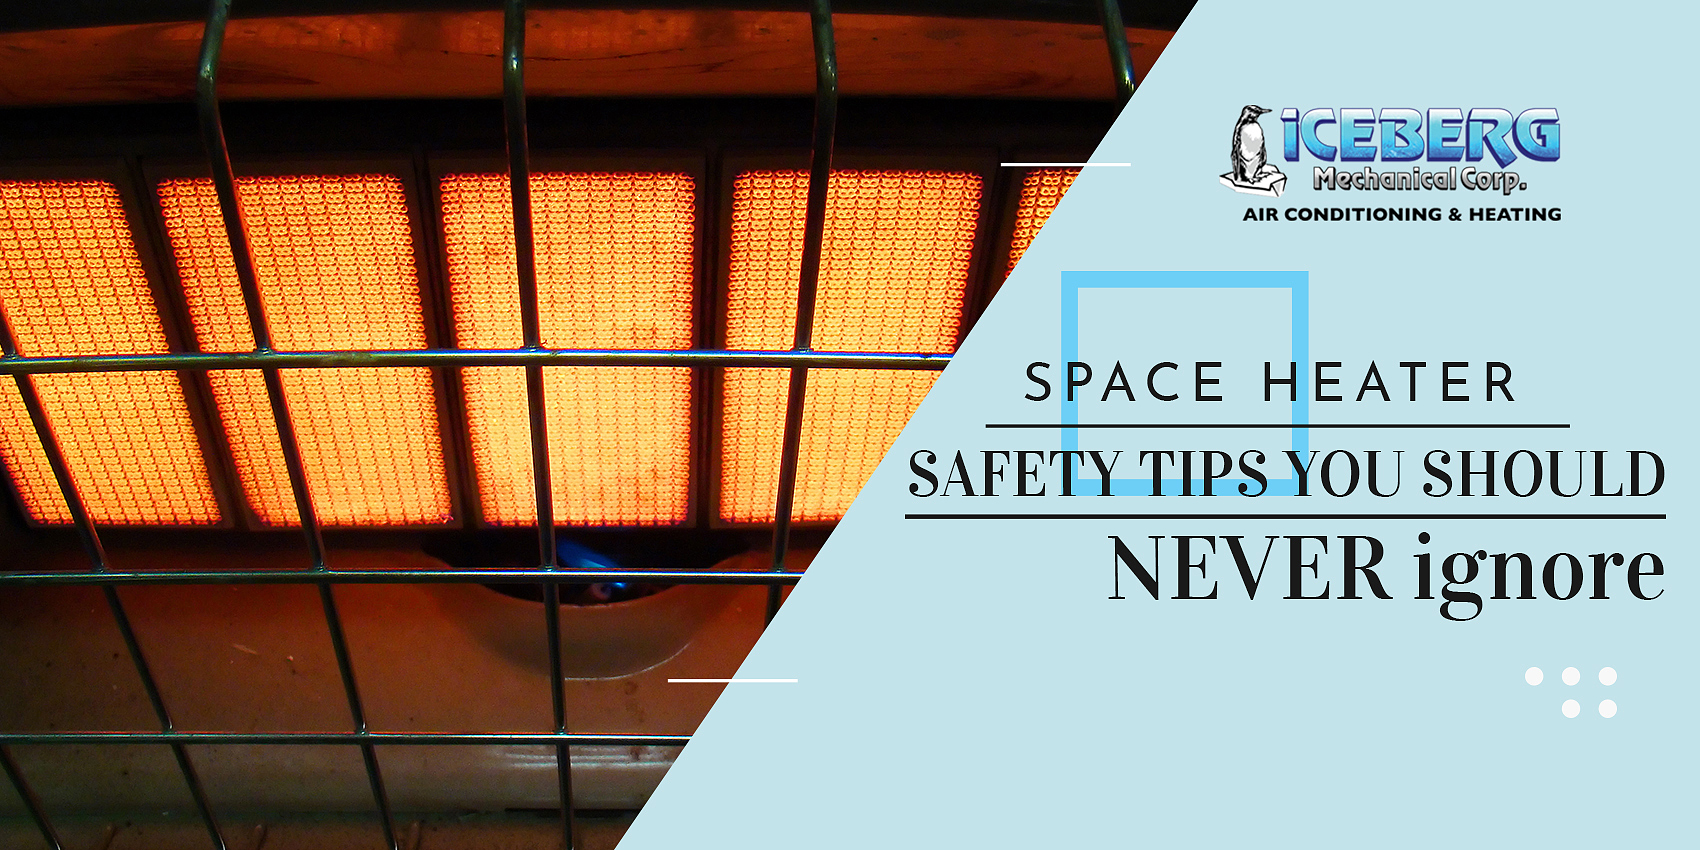 Space Heater Safety Tips You Should NEVER Ignore